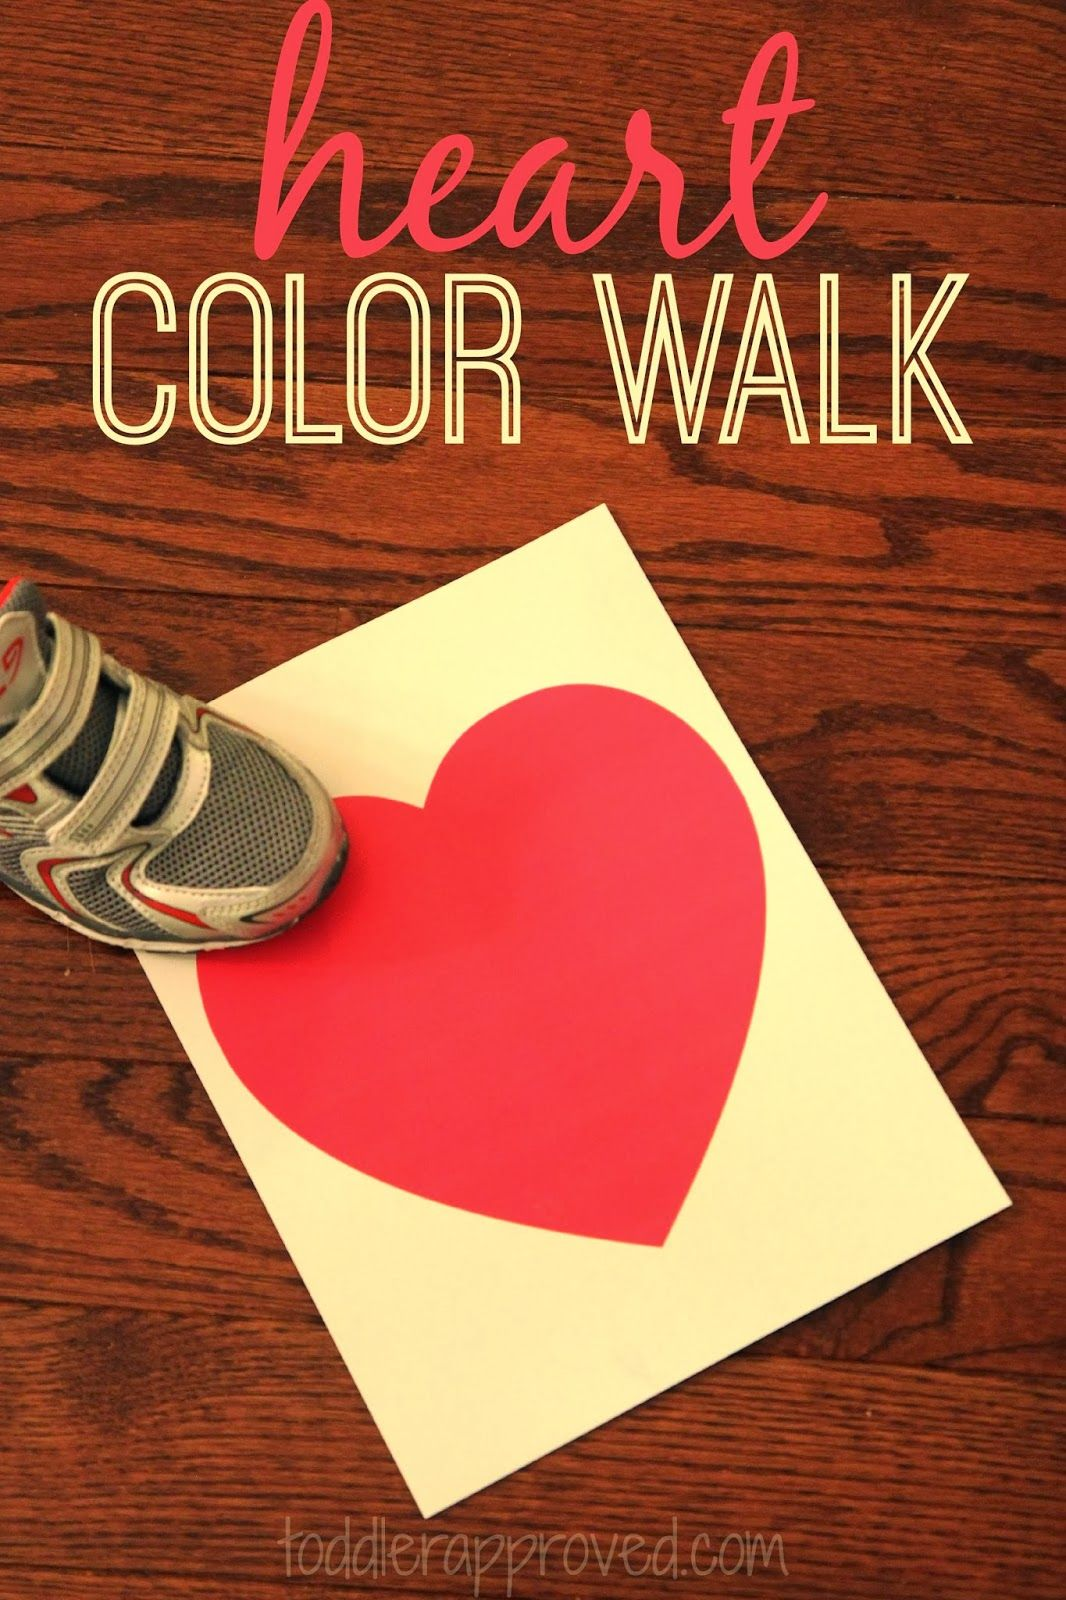 Heart Color Walk A Game For Kids Toddler Approved Toddler Valentines Valentines Day Activities Valentines School